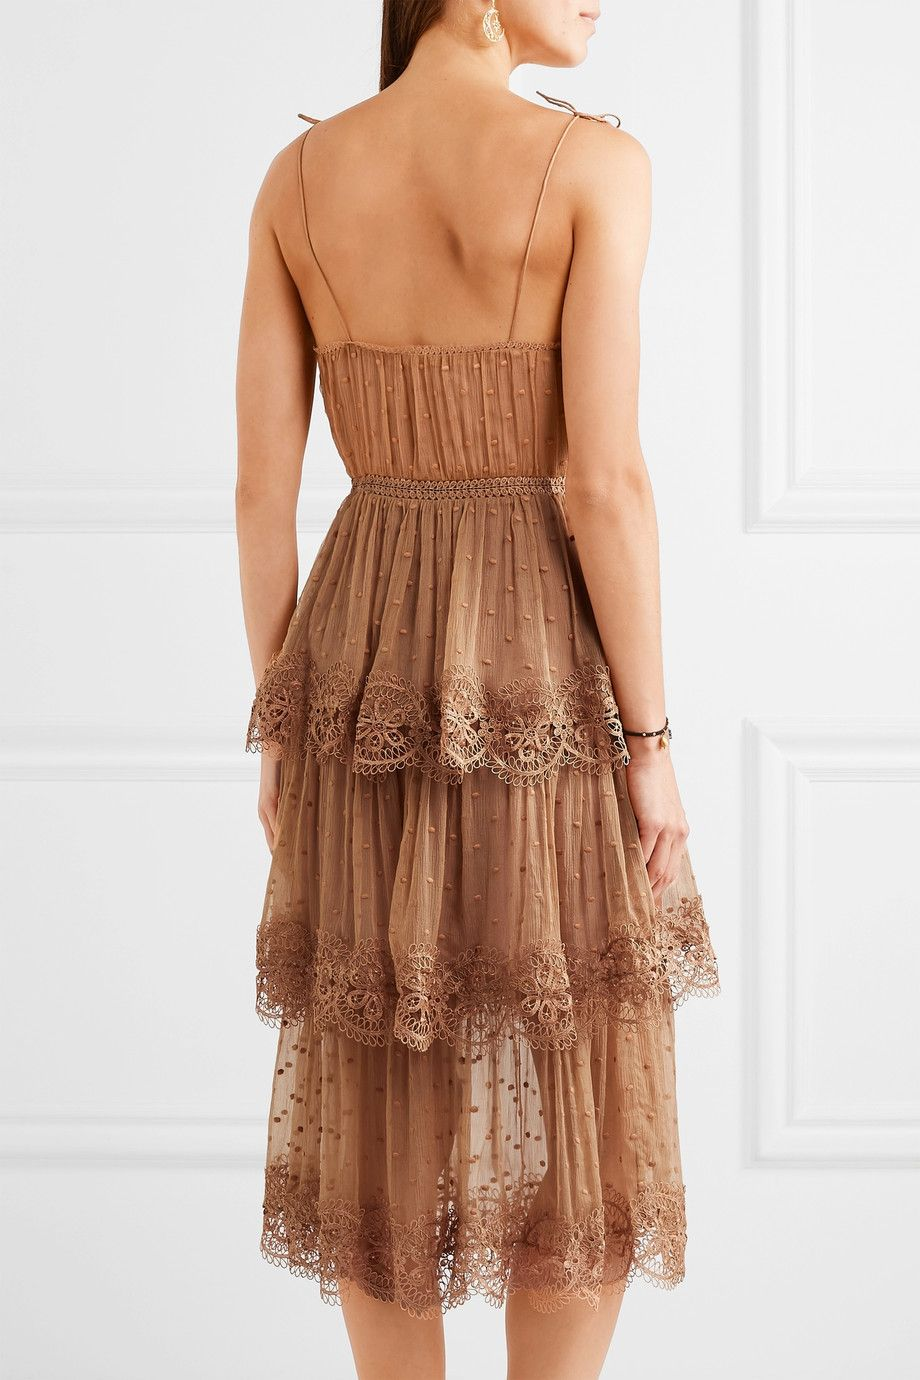 Zimmermann | EXCLUSIVE Meridian Circle lace-trimmed embroidered silk-georgette dress | NET-A-PORTER.COM